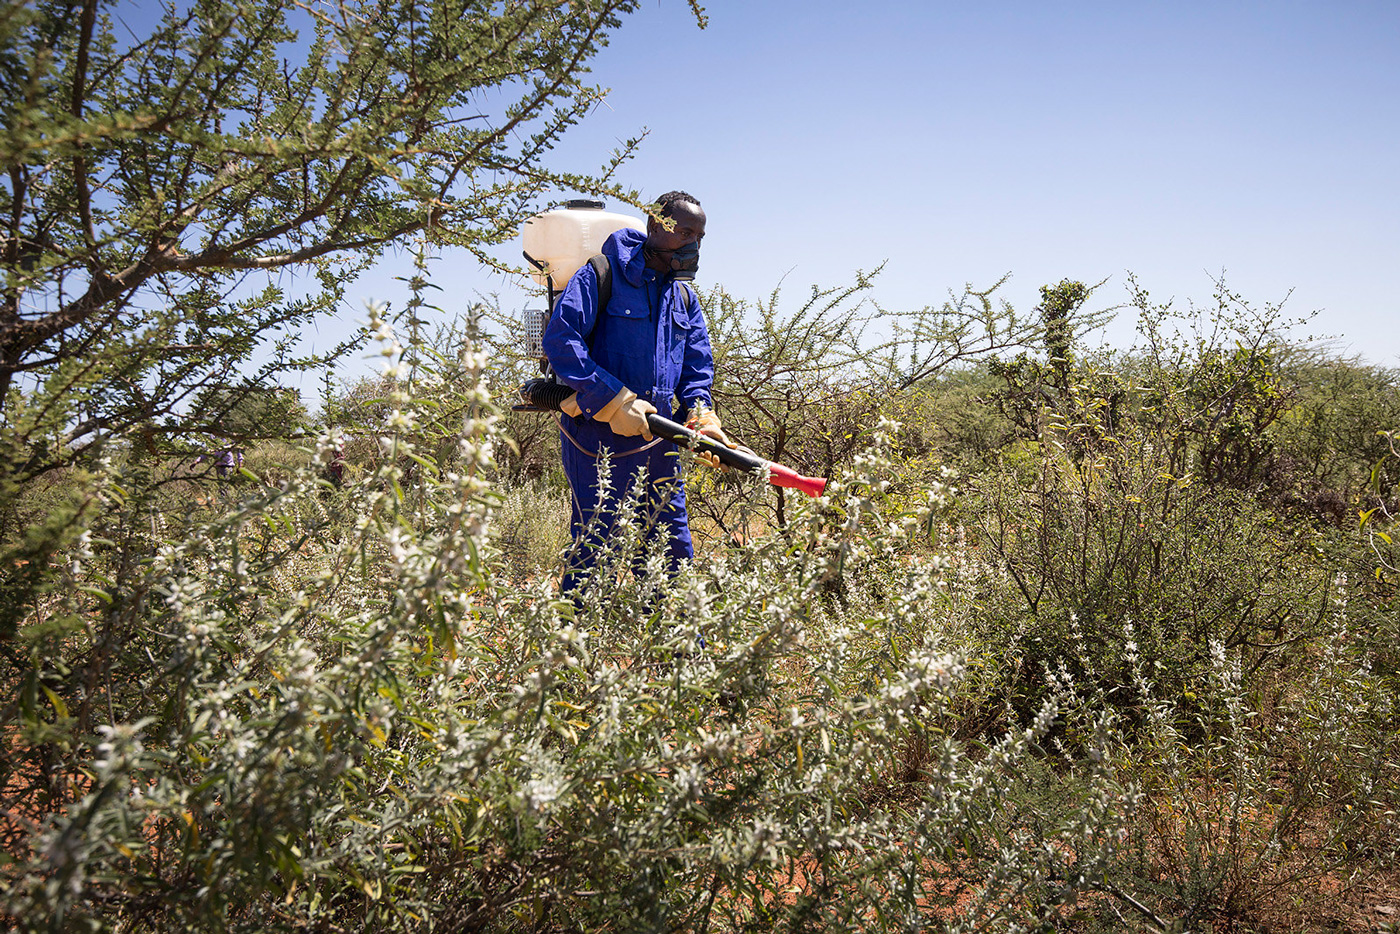 A government staff member of the Ethiopian ministry of Agriculture spraying against locusts in the Somali region of Ethiopia. Credit: FAO/Petterik Wiggers